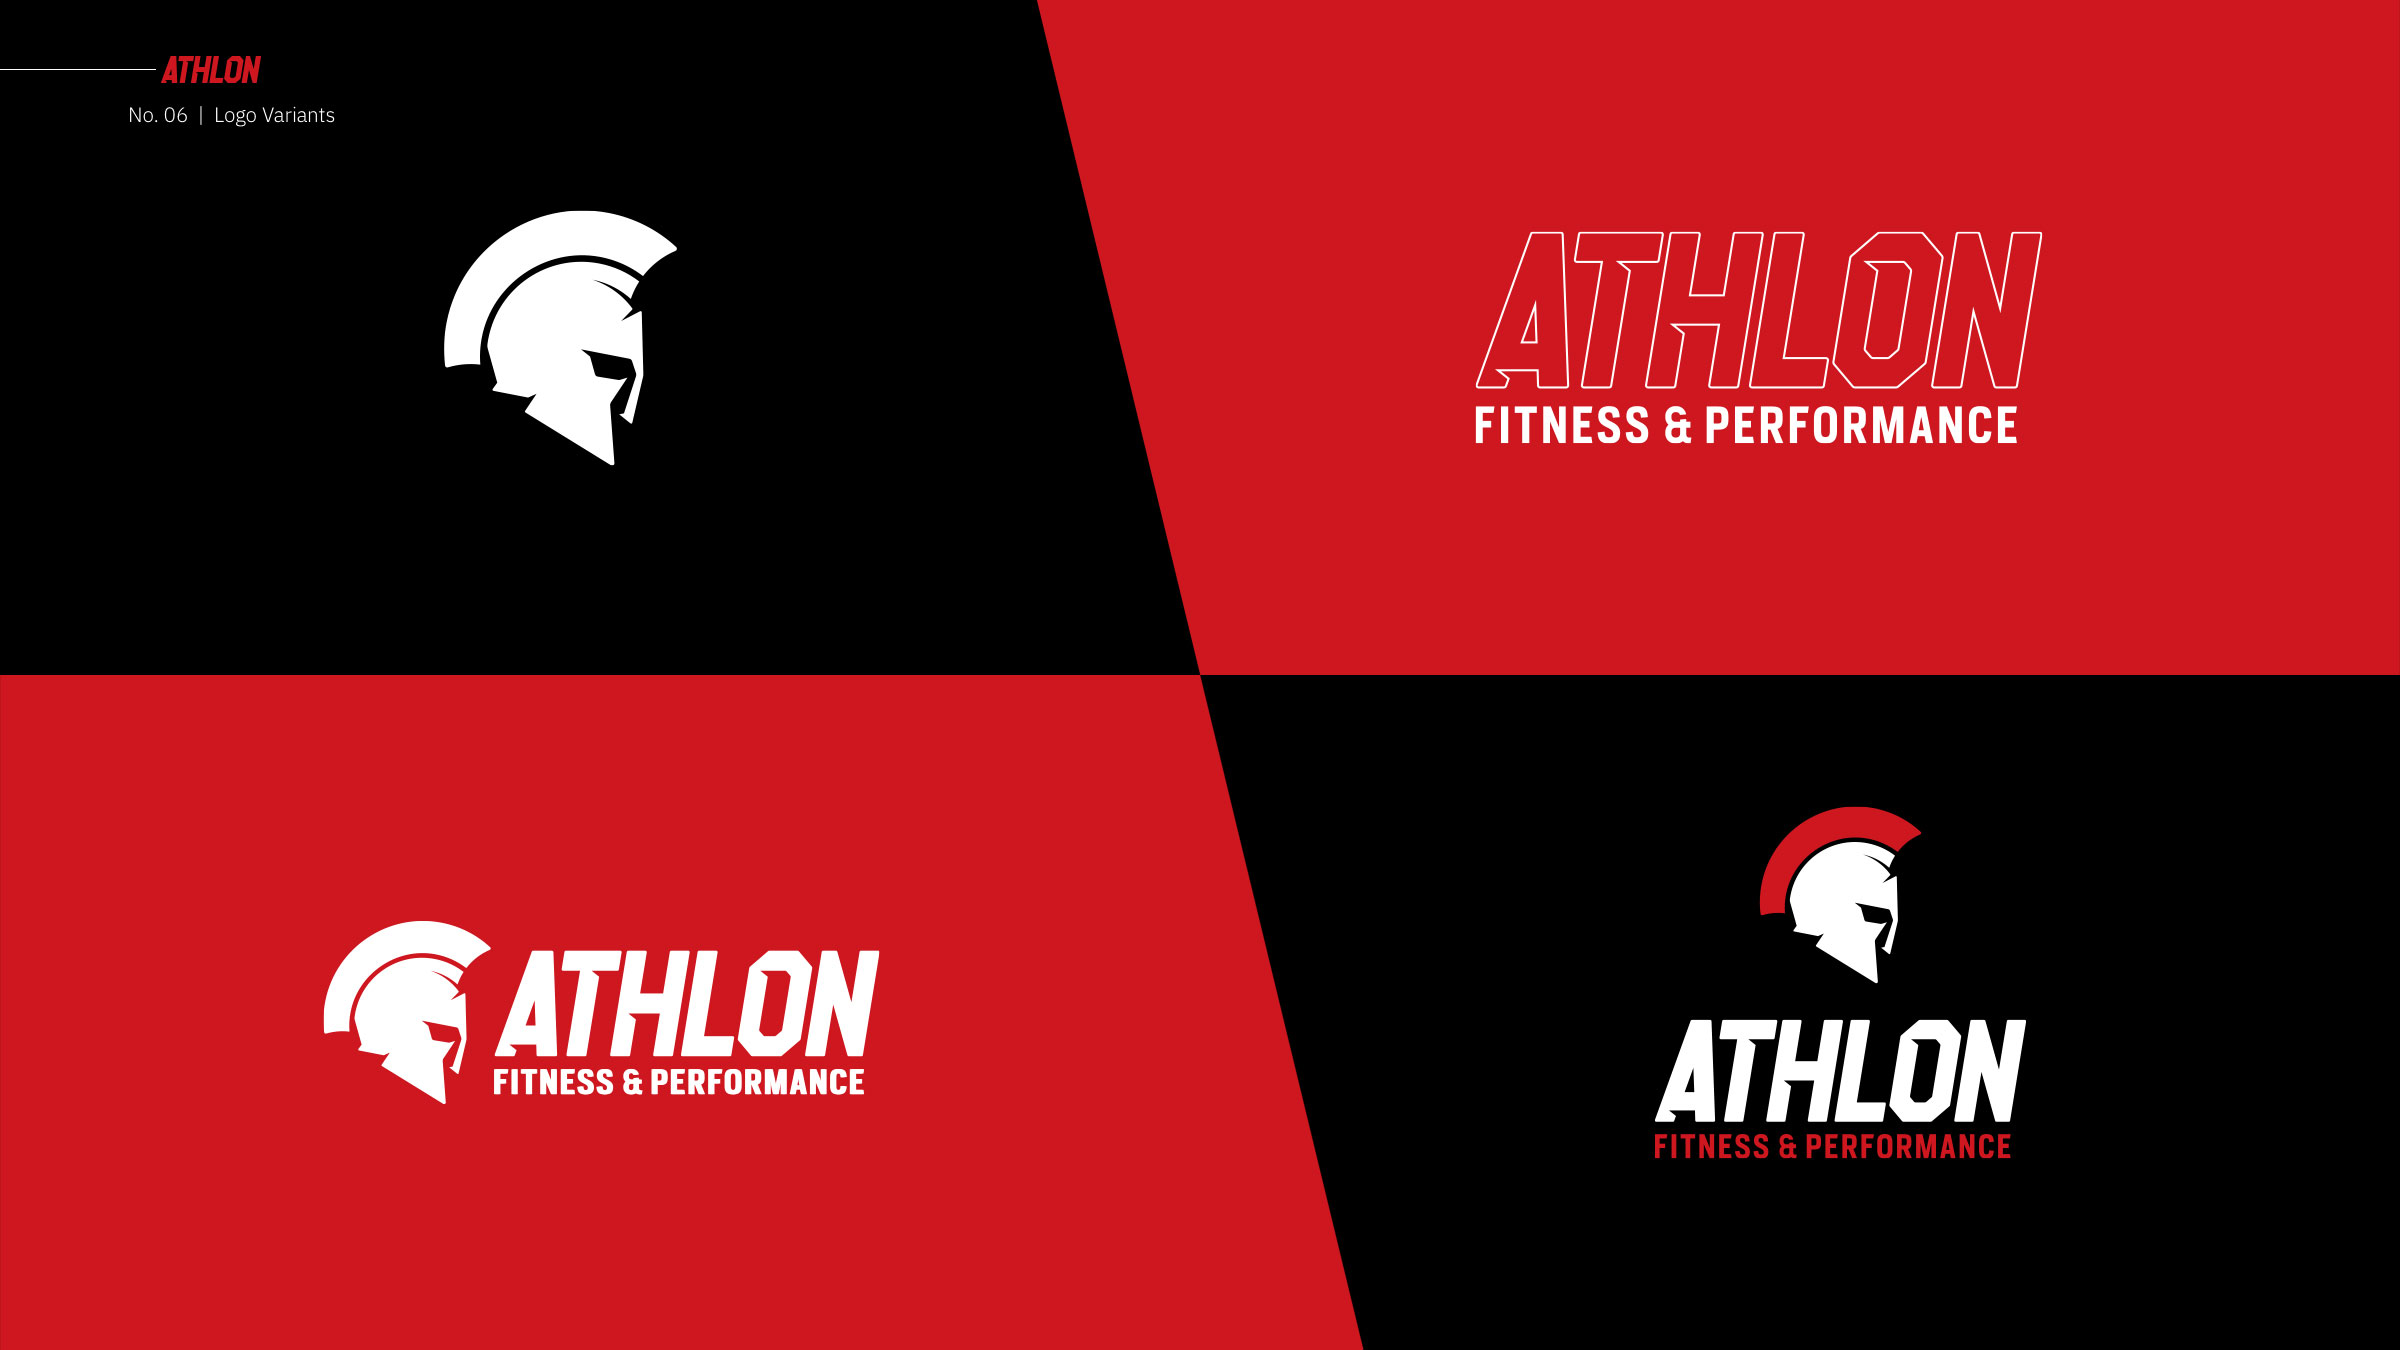 Athlon-Brand-Refresh-06-Logo-Variants